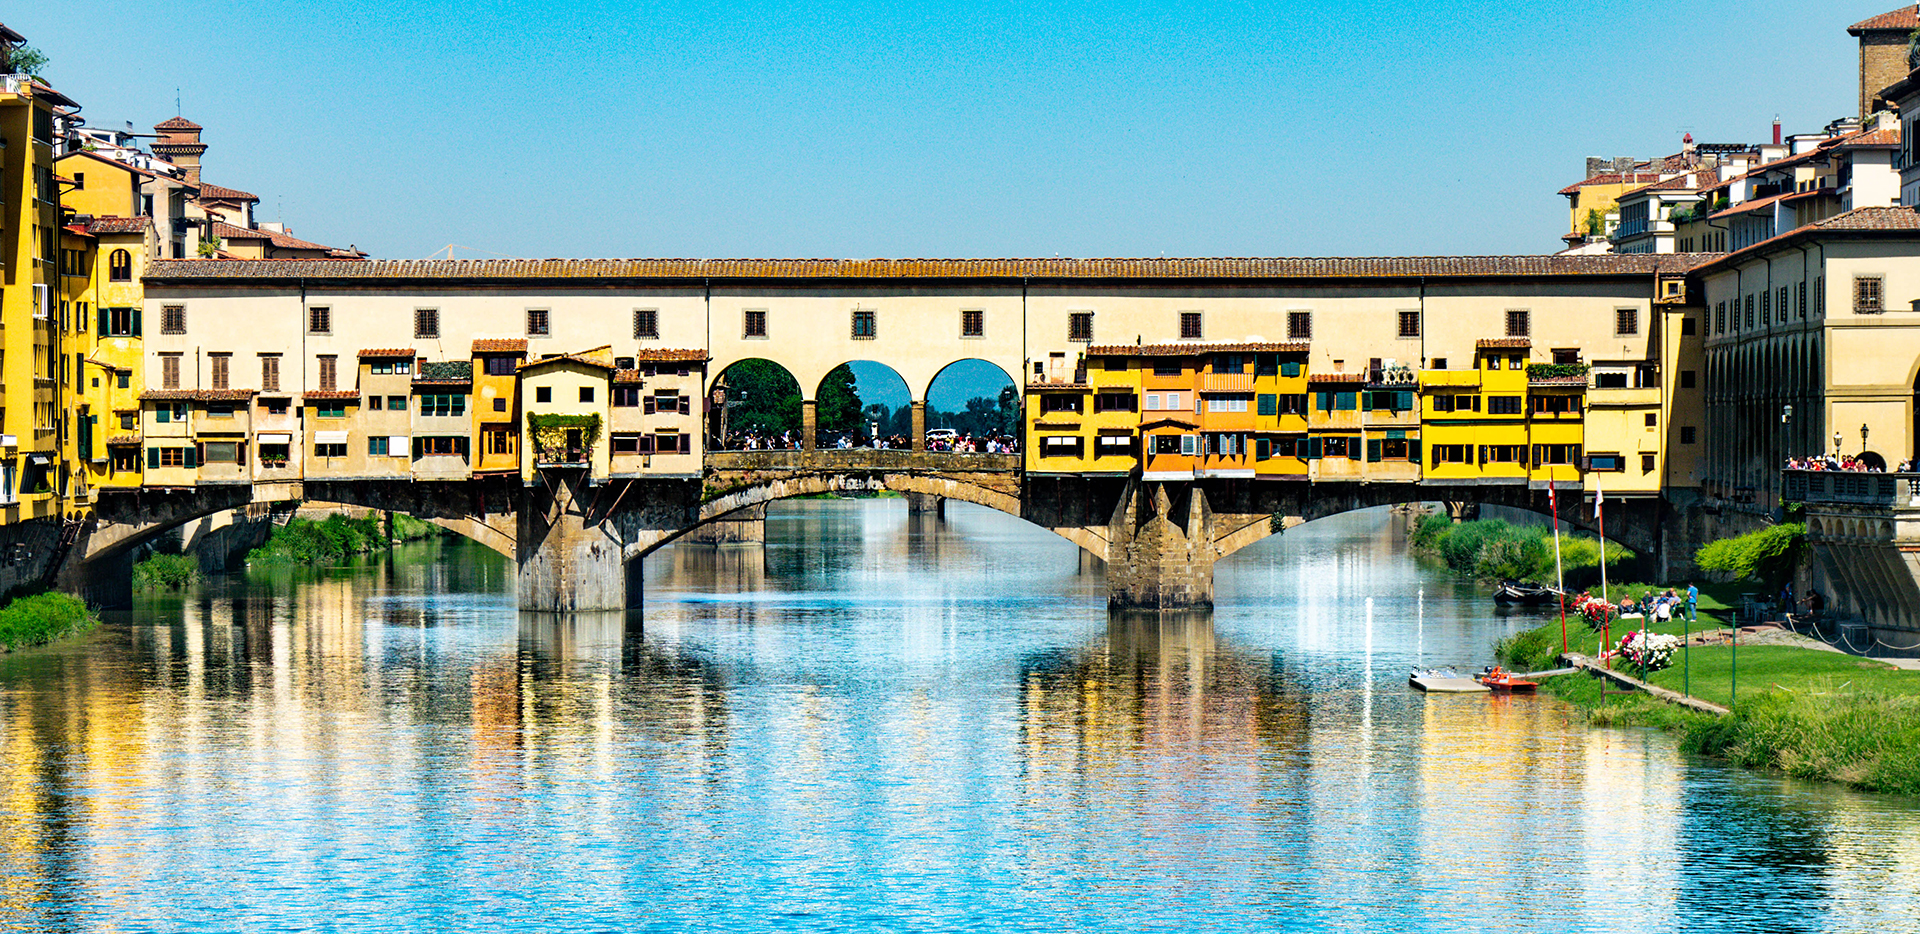 Ponte Vecchio On The River Arno